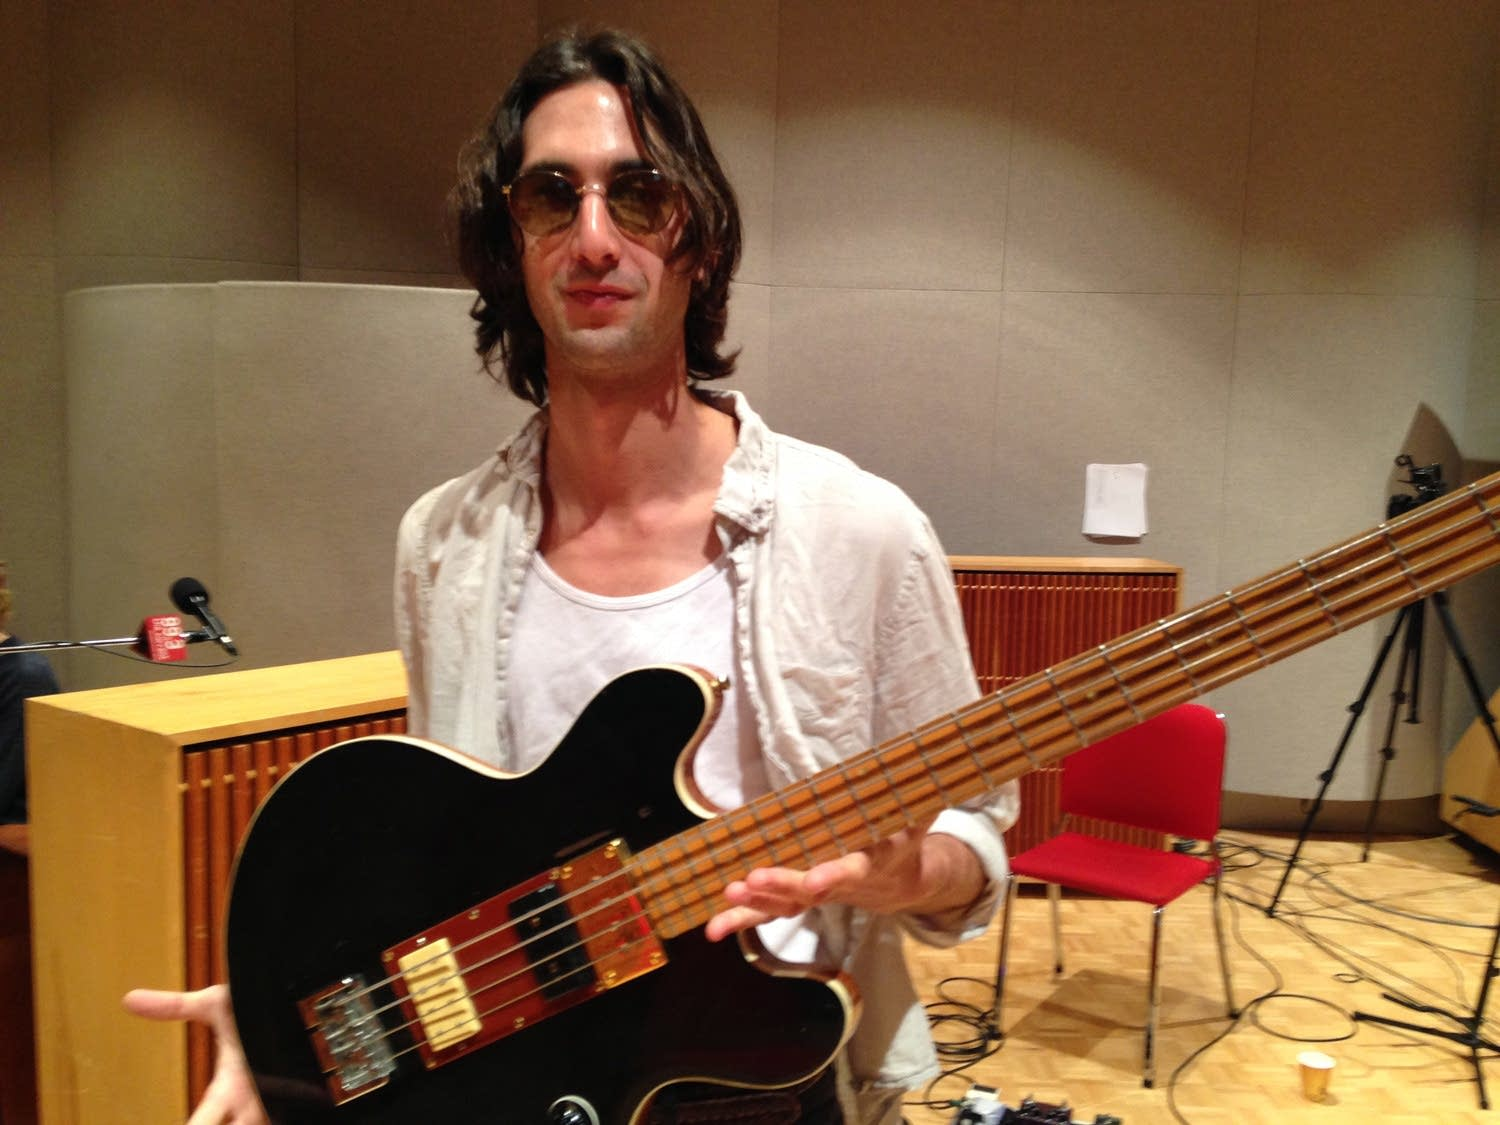 Wylie Gelber and his Model 2 bass